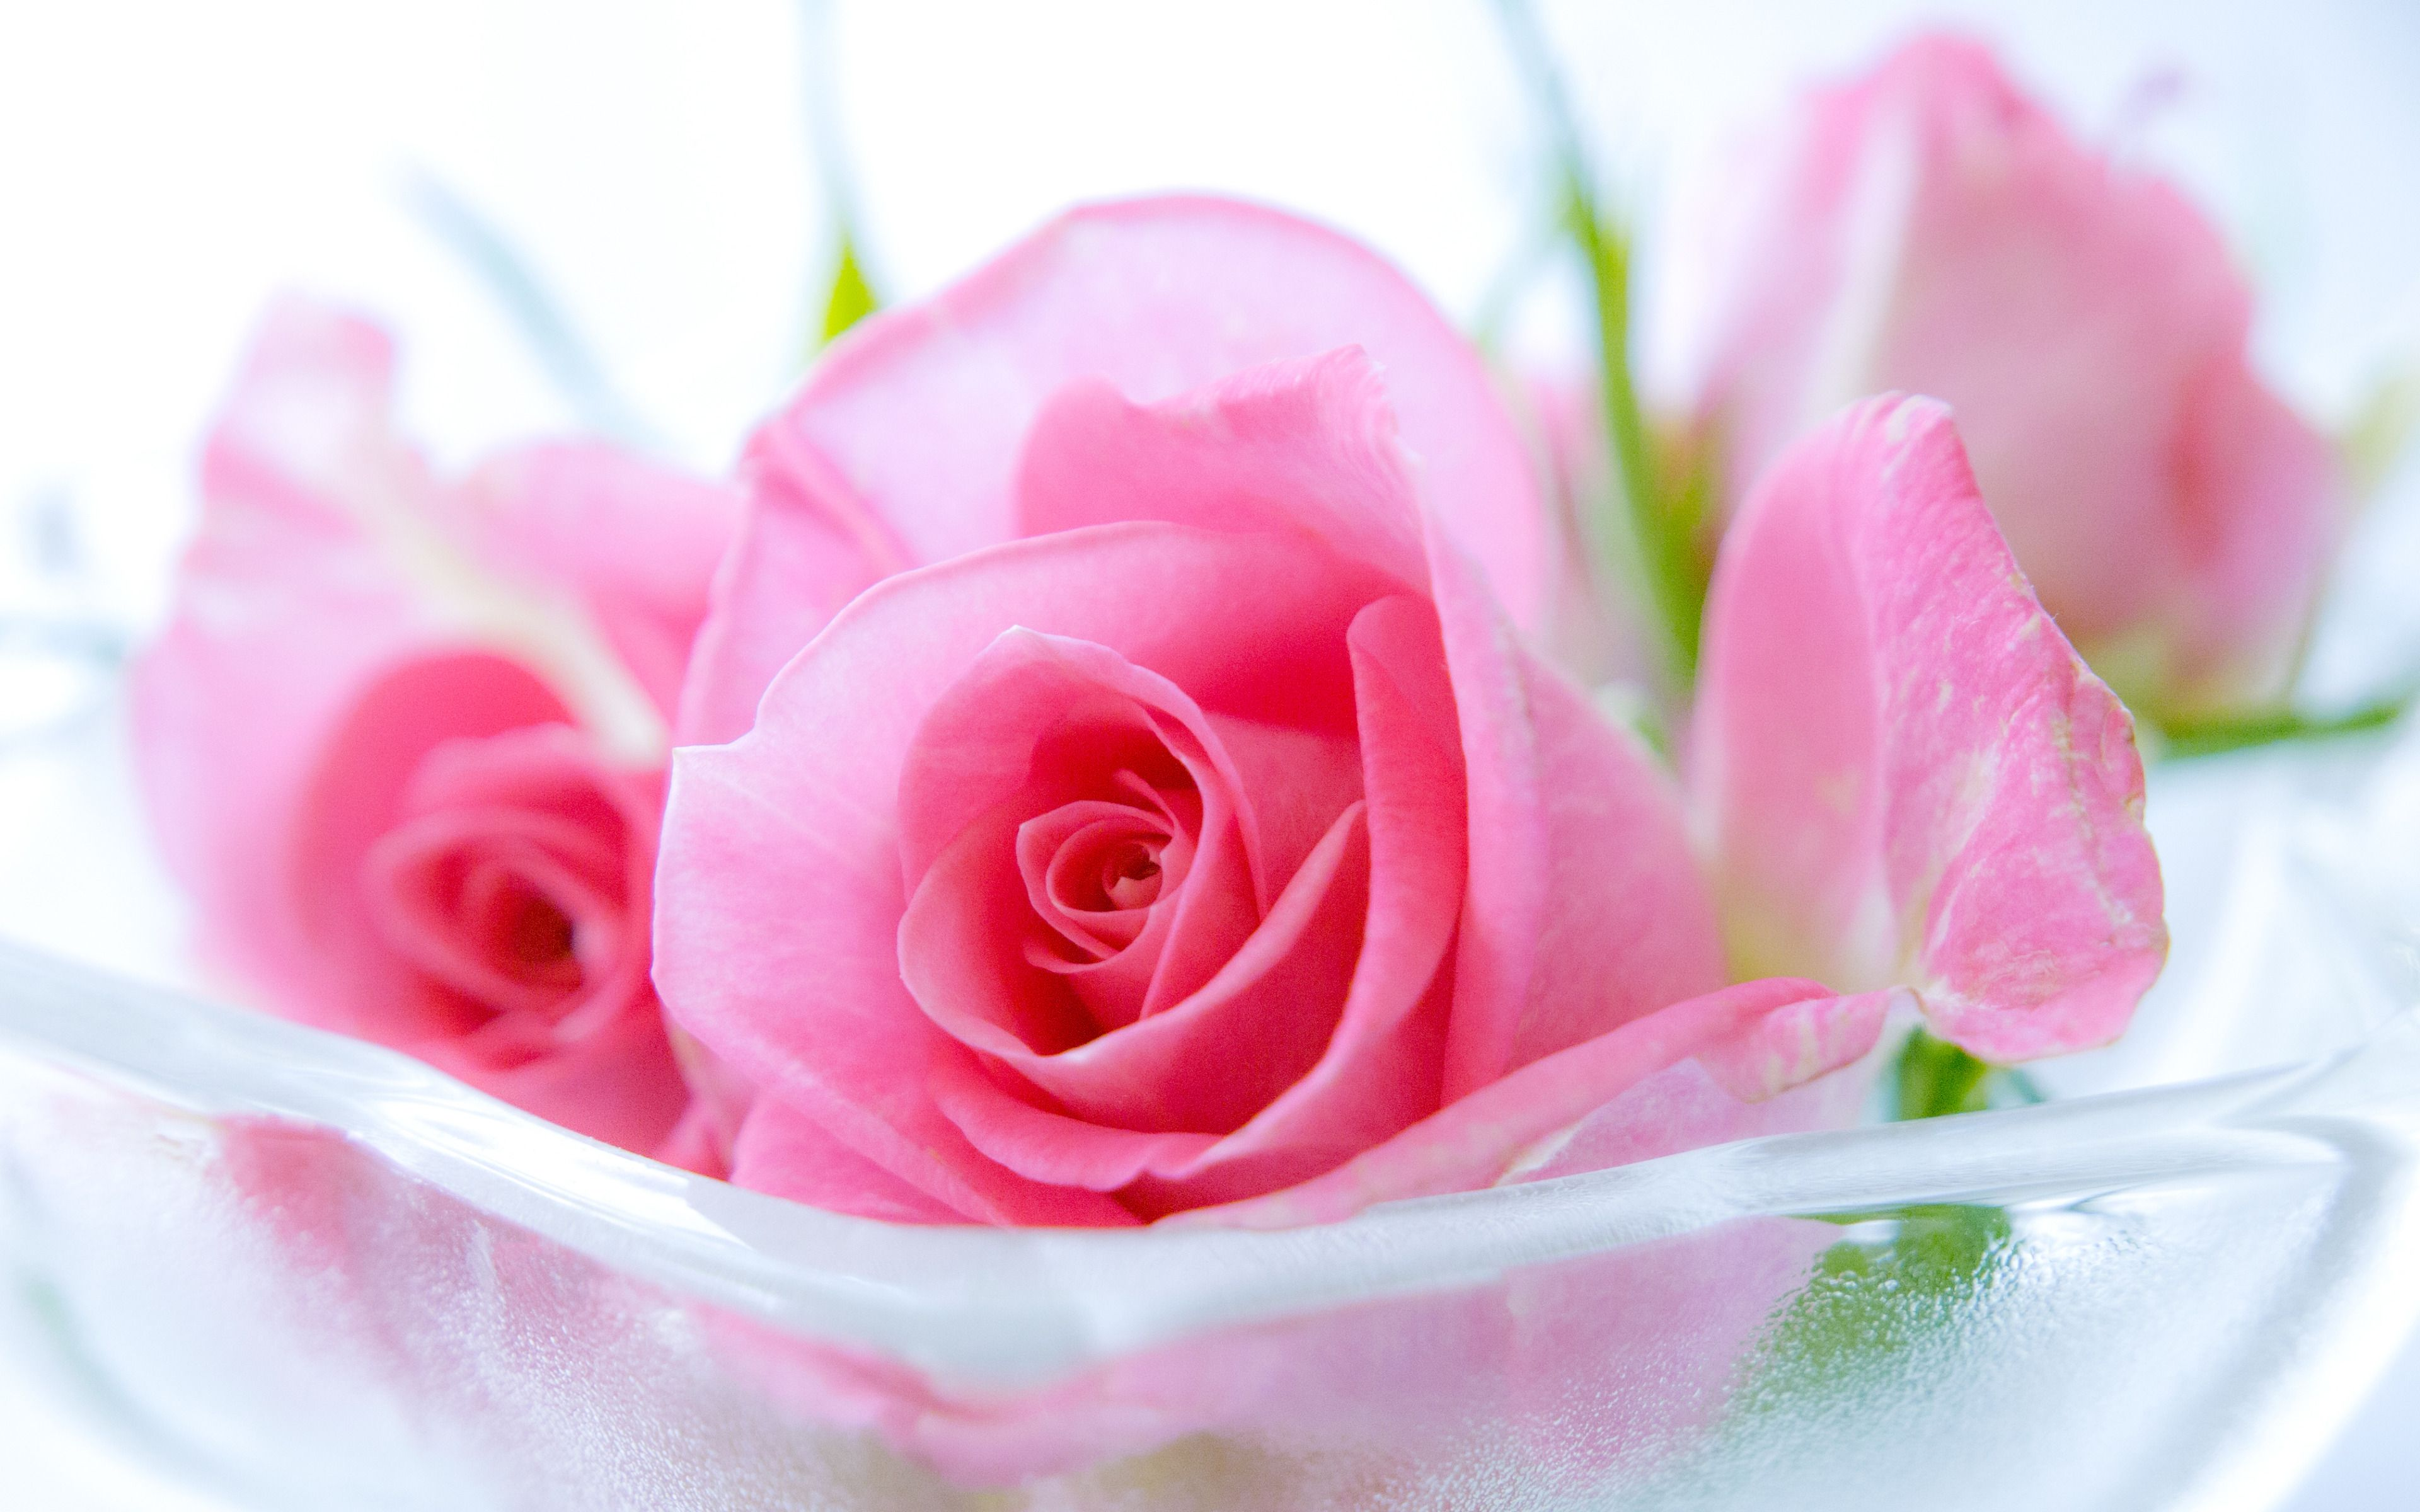 Pink roses hd wallpapers rose wallpaper rose wallpaper - Pink roses background hd ...